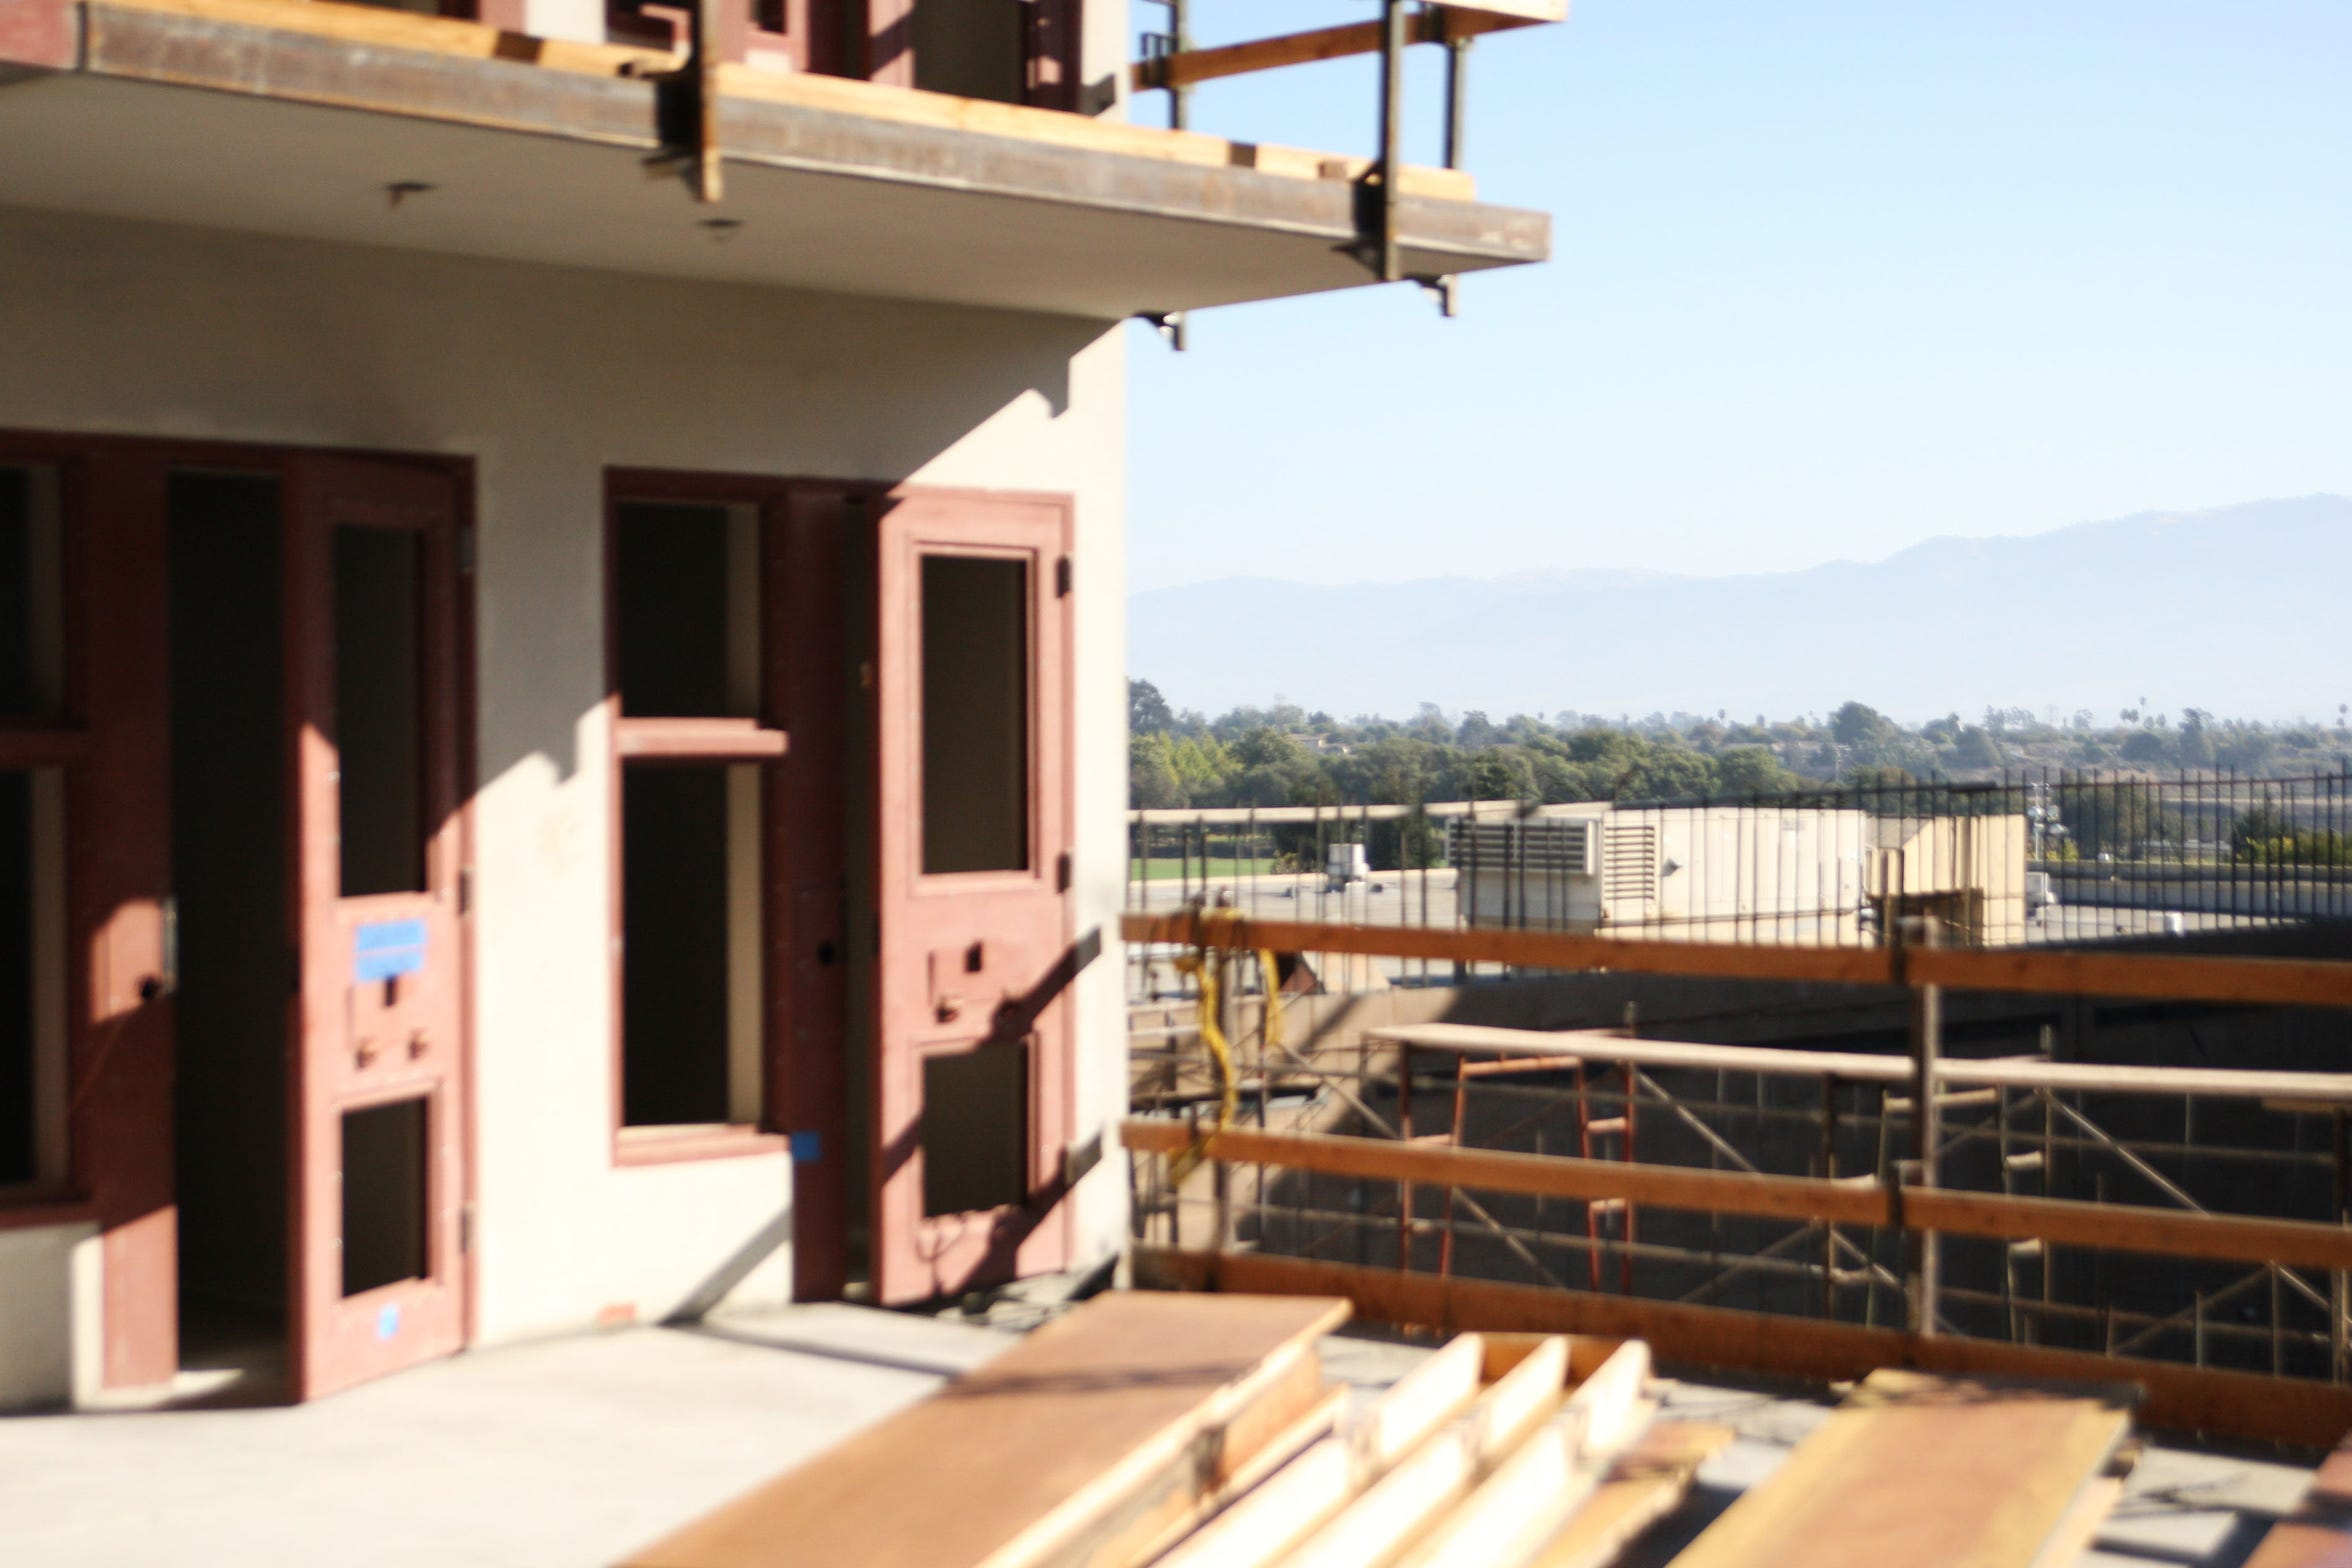 A view of the mountains through the edge of the pod in the new building at the Monterey County Jail. While inmates will not have windows to the outside from their cells, the yard areas will be enmeshed and allow them to enjoy some fresh air and sunight.